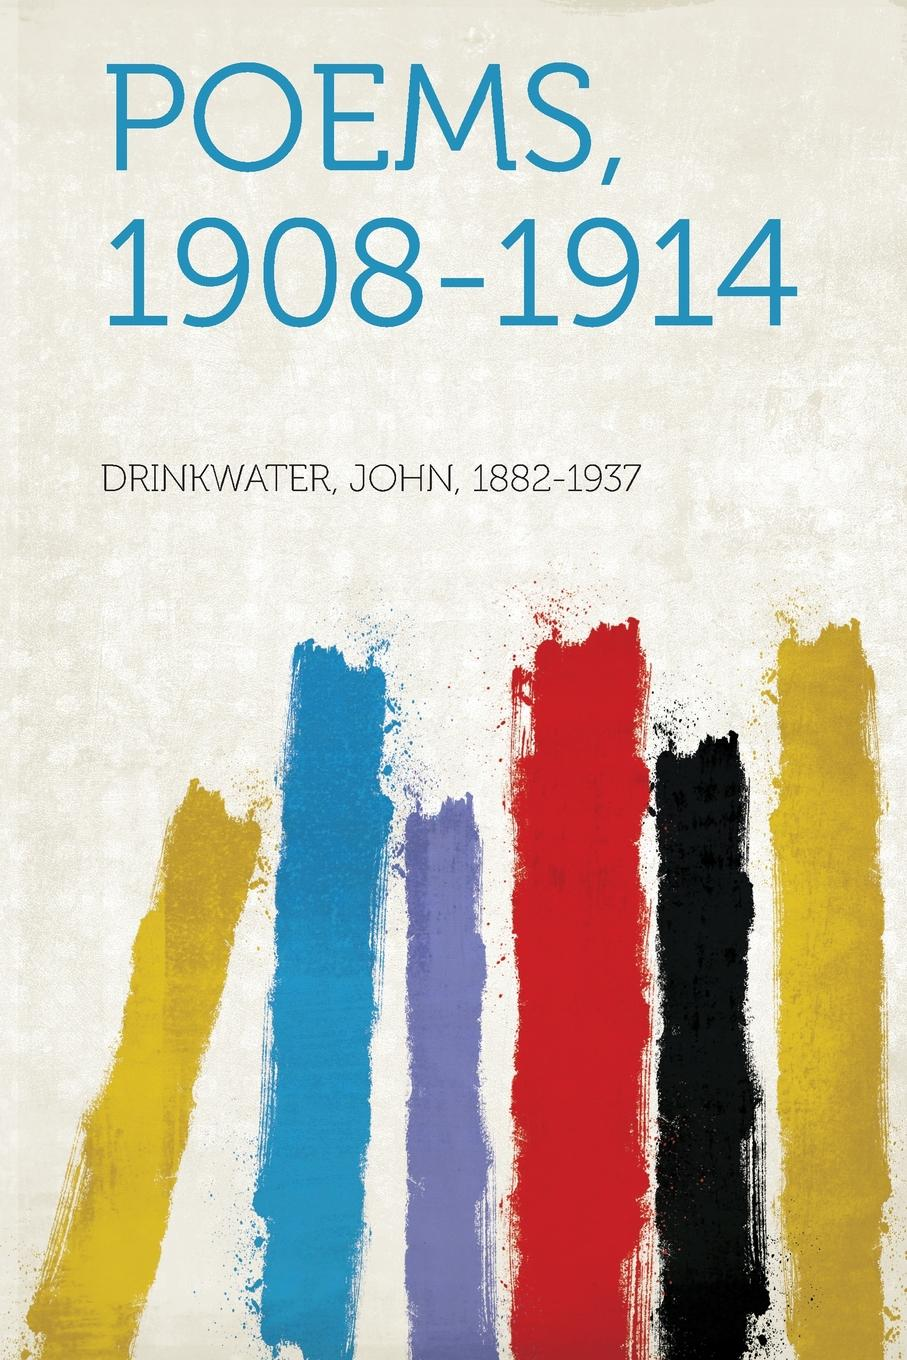 Drinkwater John 1882-1937 Poems, 1908-1914